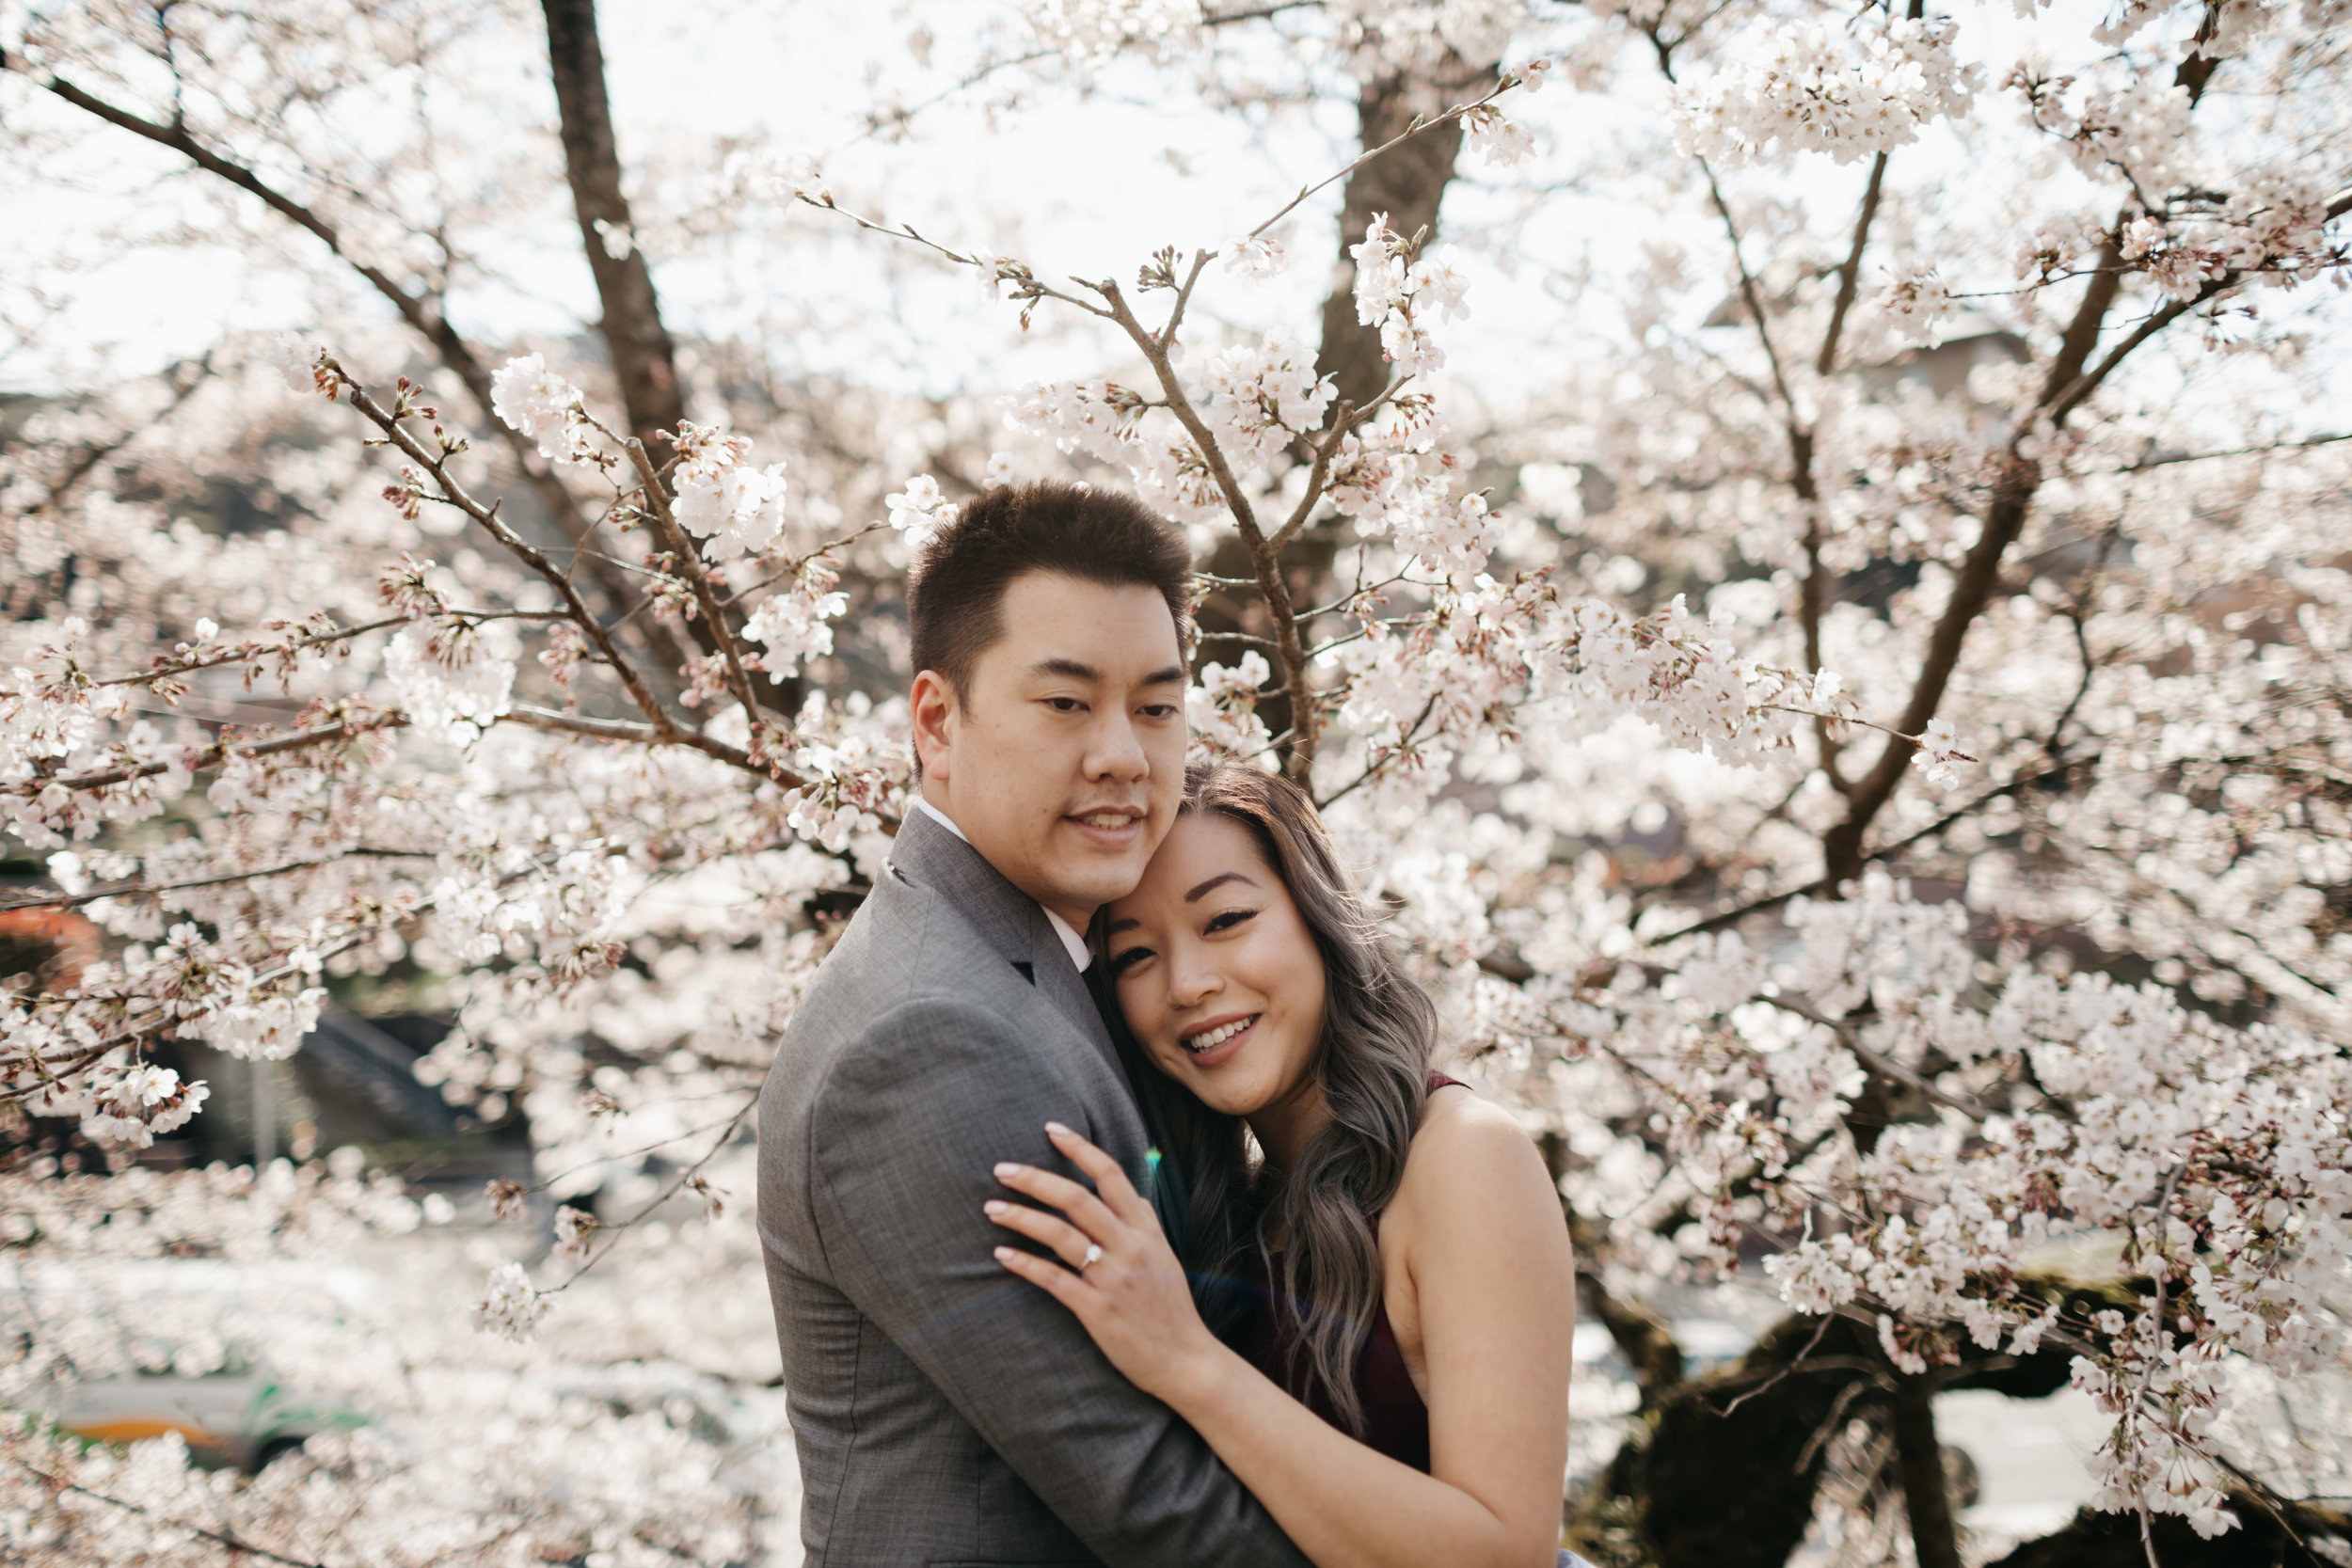 Kyoto-cherry-blossom-Engagement-photo-by-samantha-look.jpg